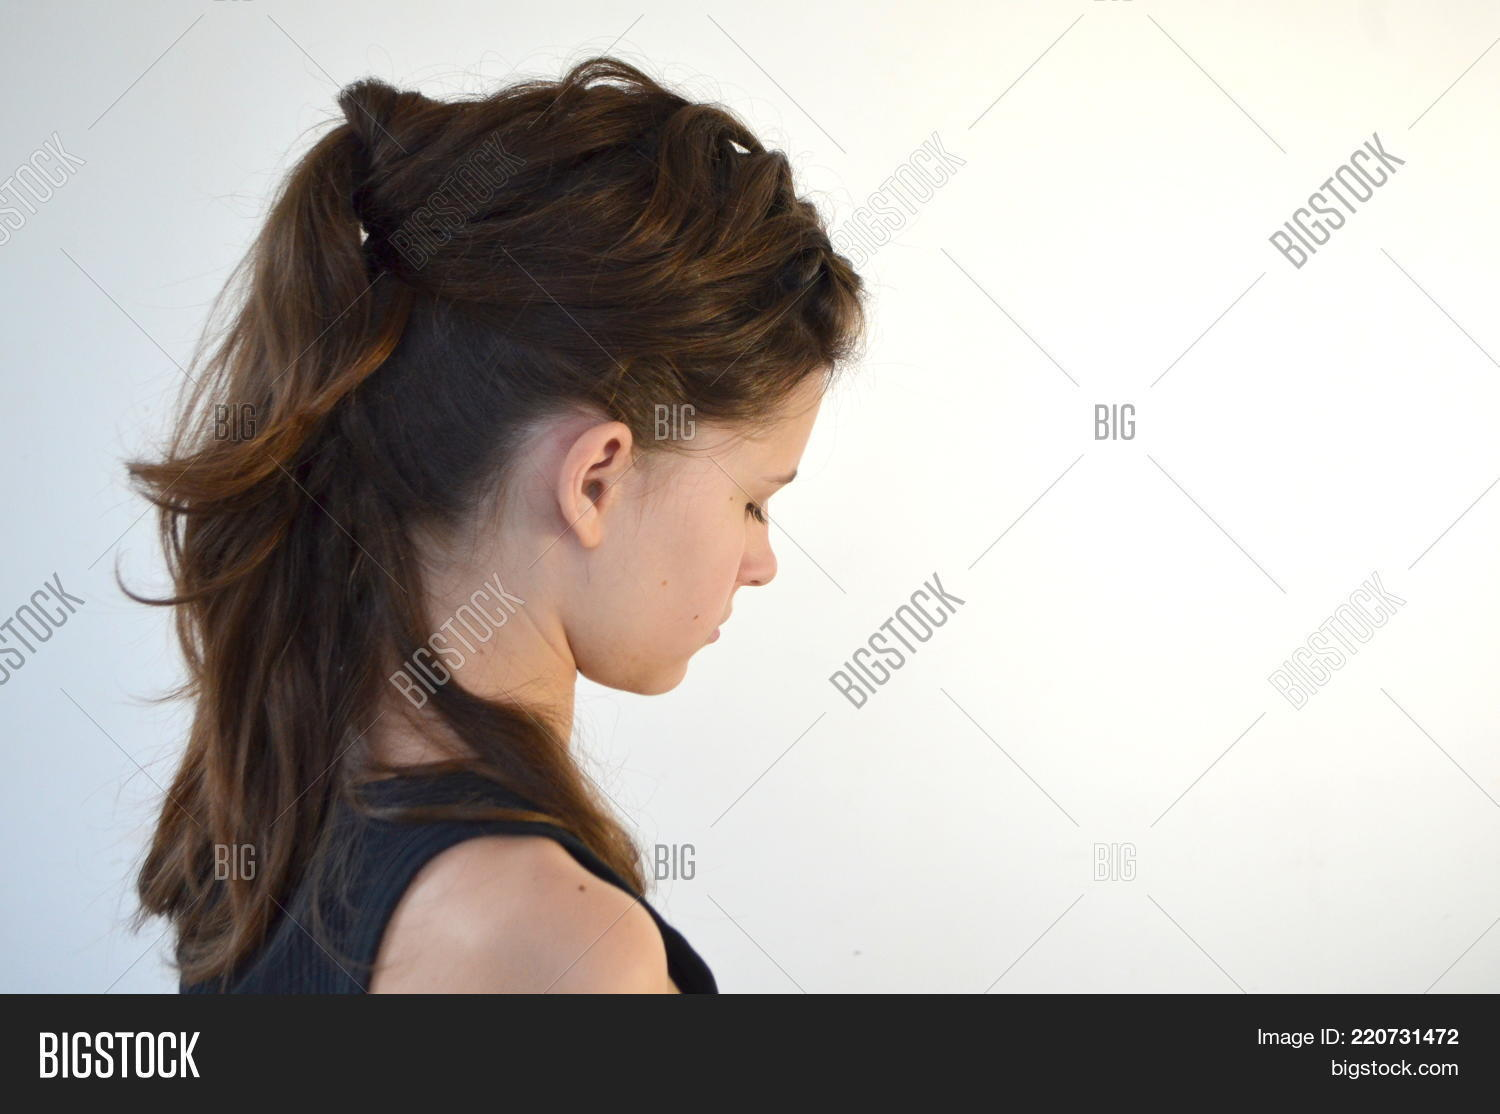 Hairstyles On Medium Image Photo Free Trial Bigstock